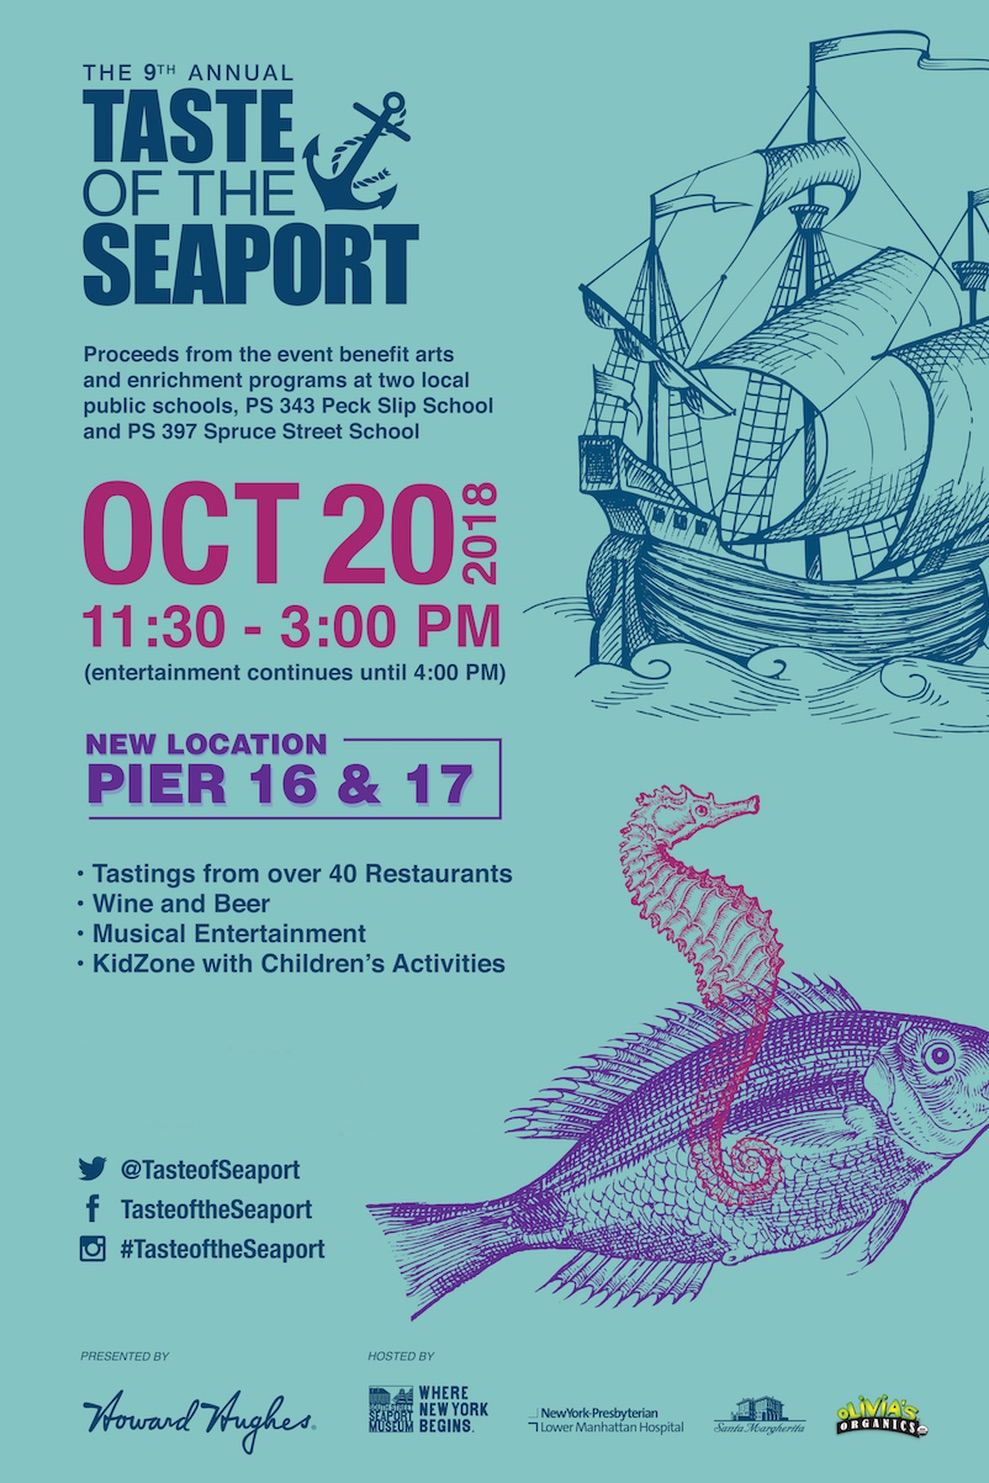 Venture South This Month To The Annual Taste Of Seaport